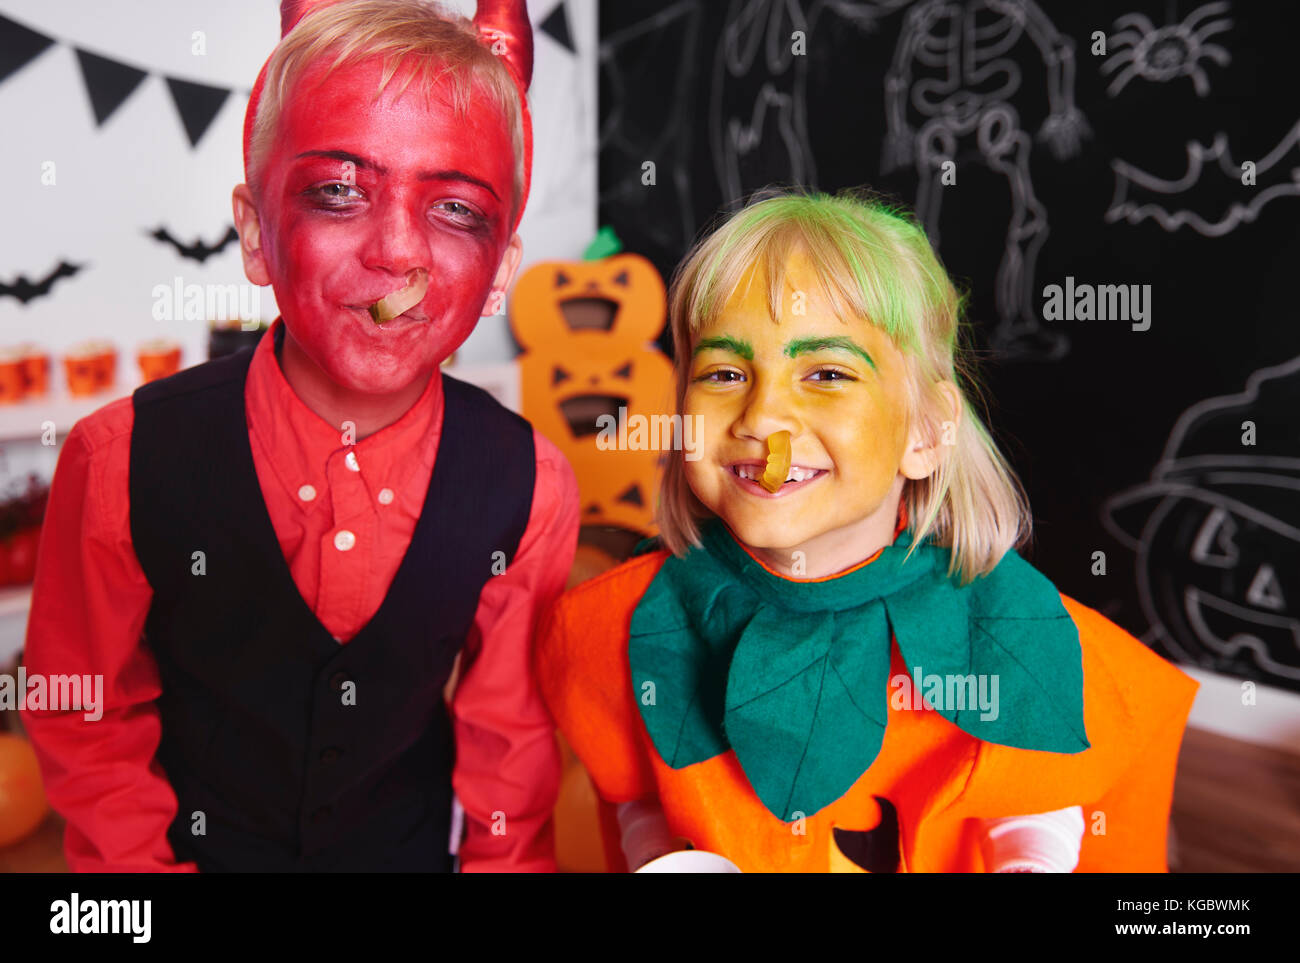 Siblings having a fun with gummy worms - Stock Image